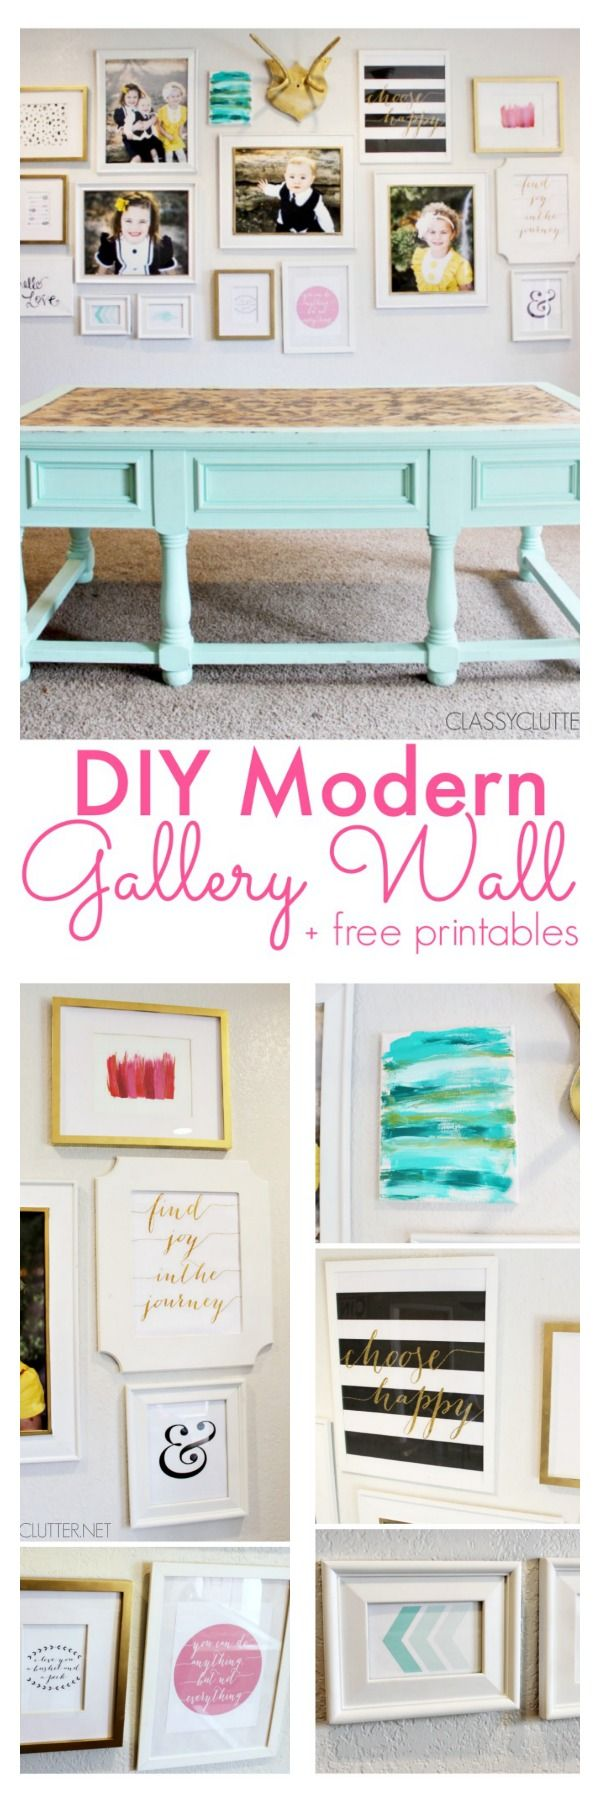 A fun Modern Gallery wall that can change any room to fabulous! Click for more details